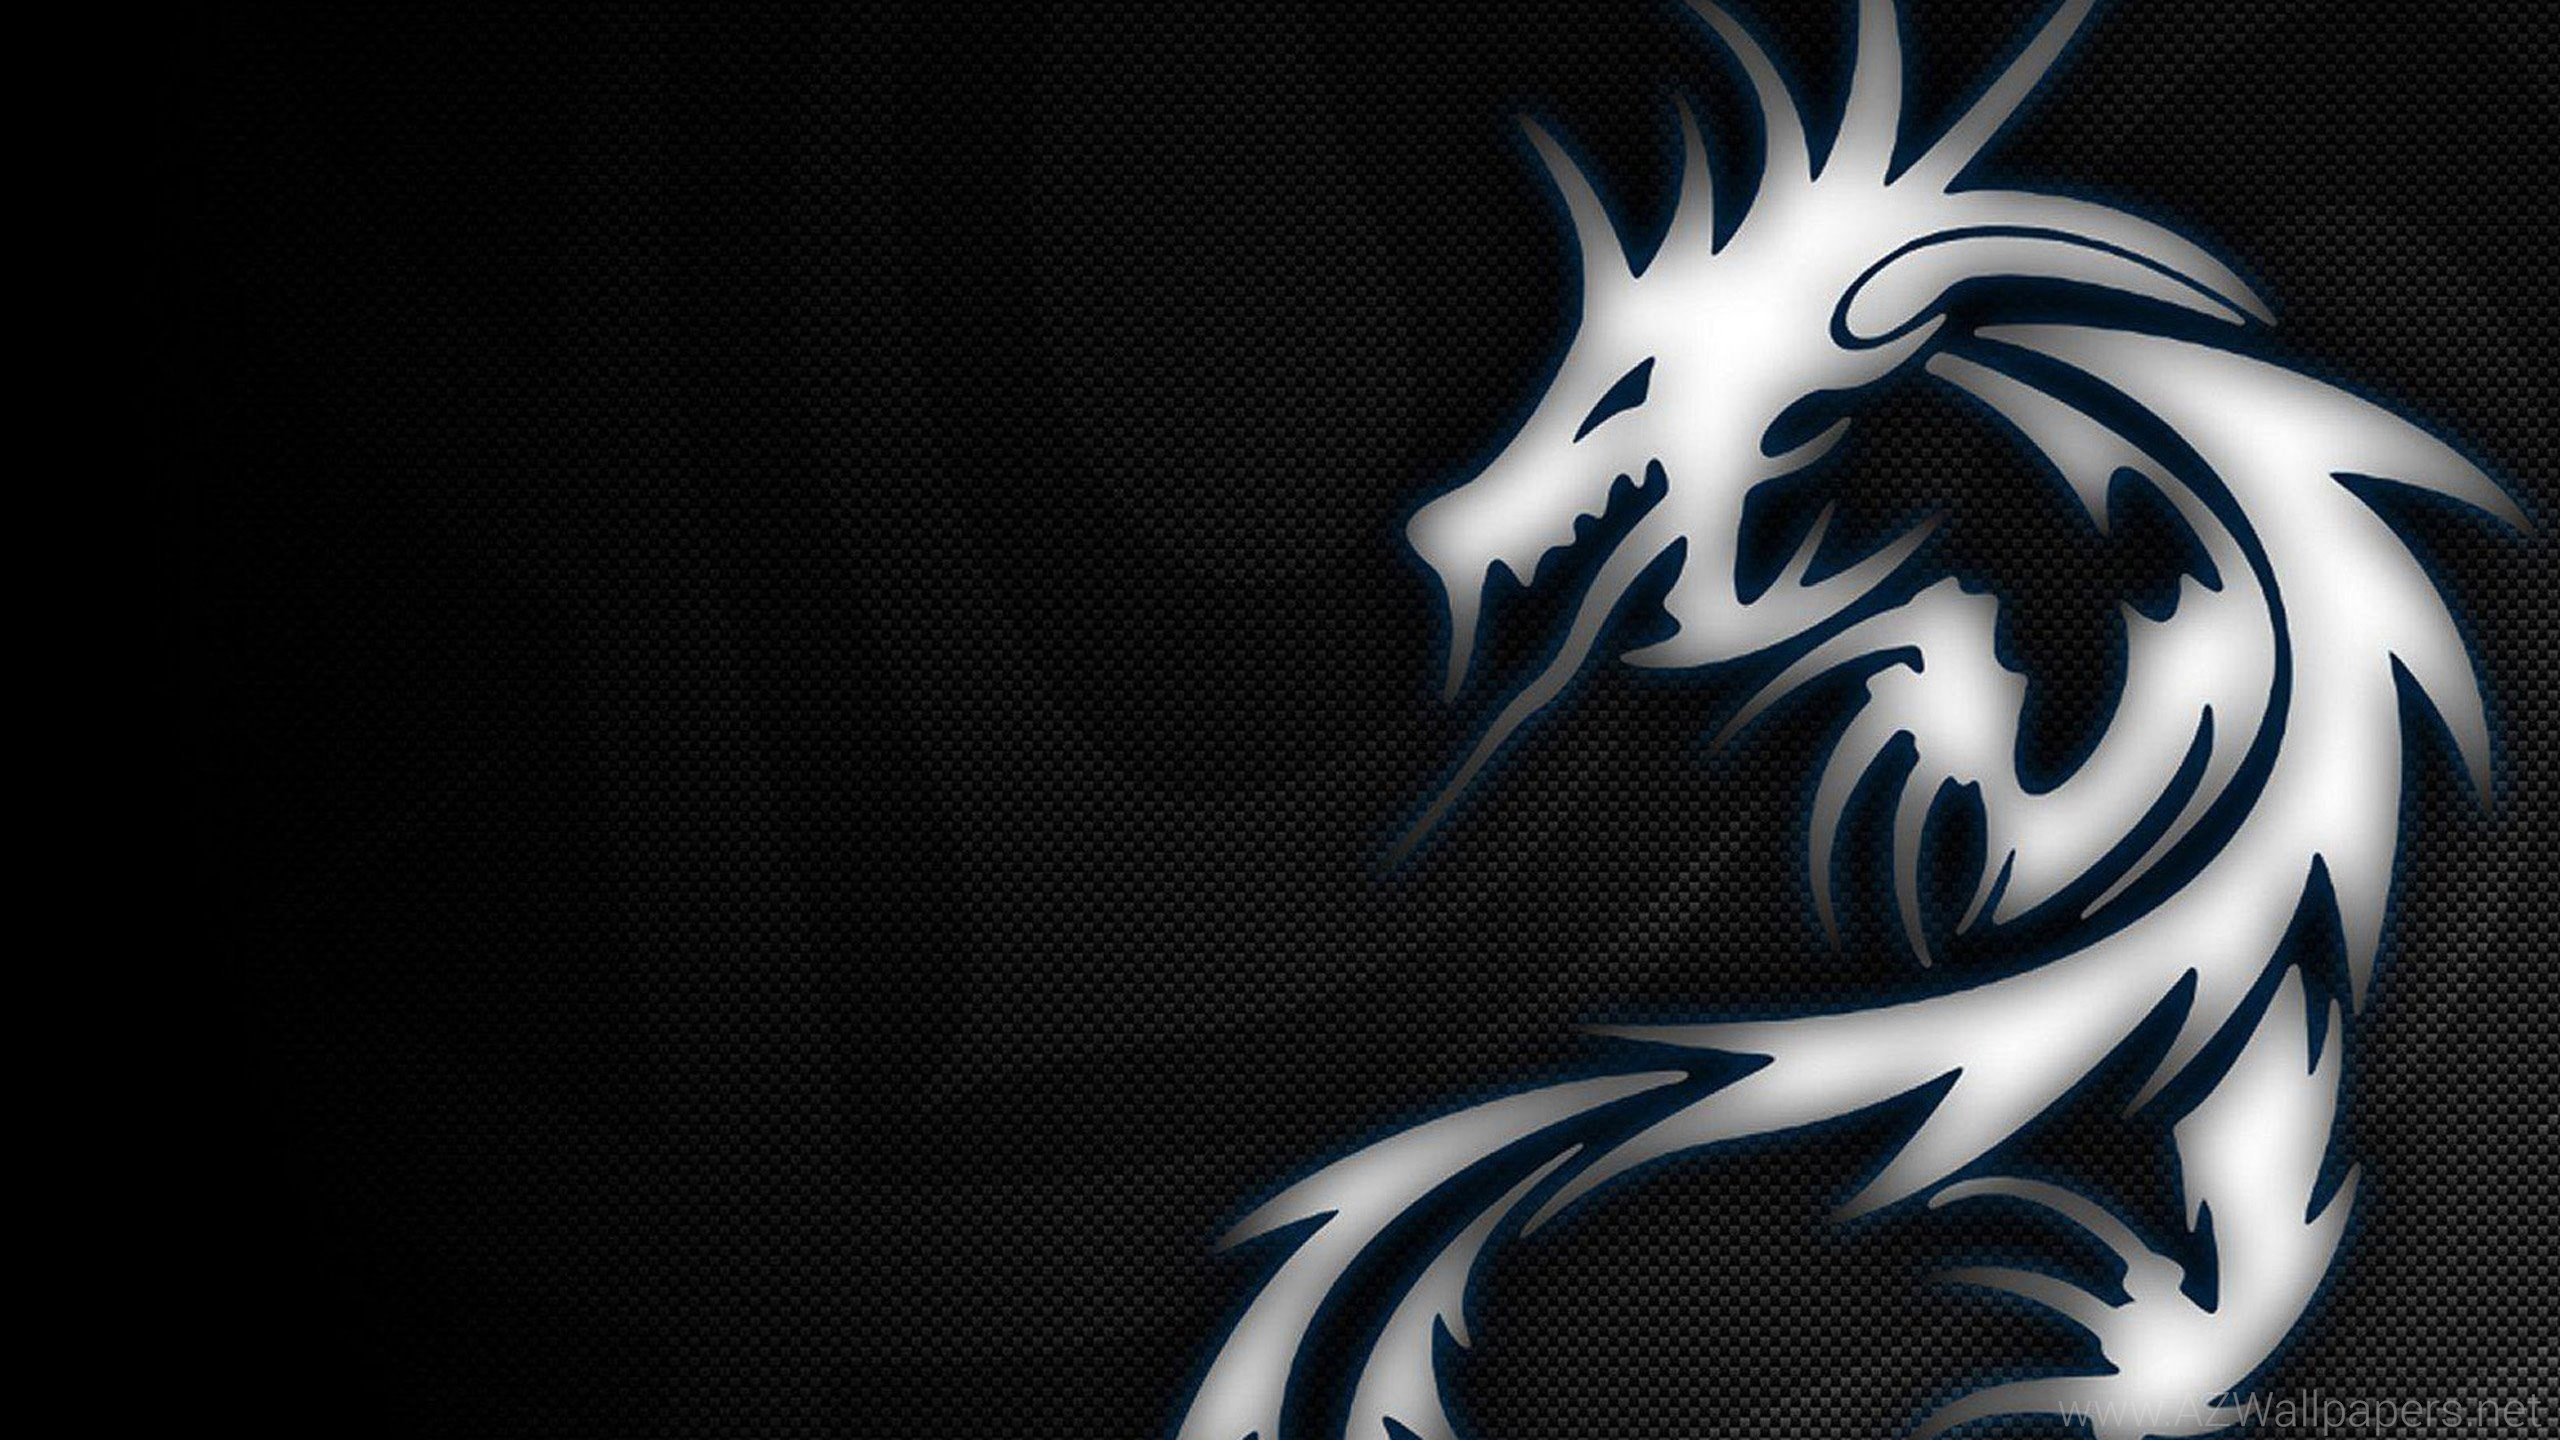 2560x1440 Dragon MSI Logo Wallpaper, HD Desktop Wallpapers